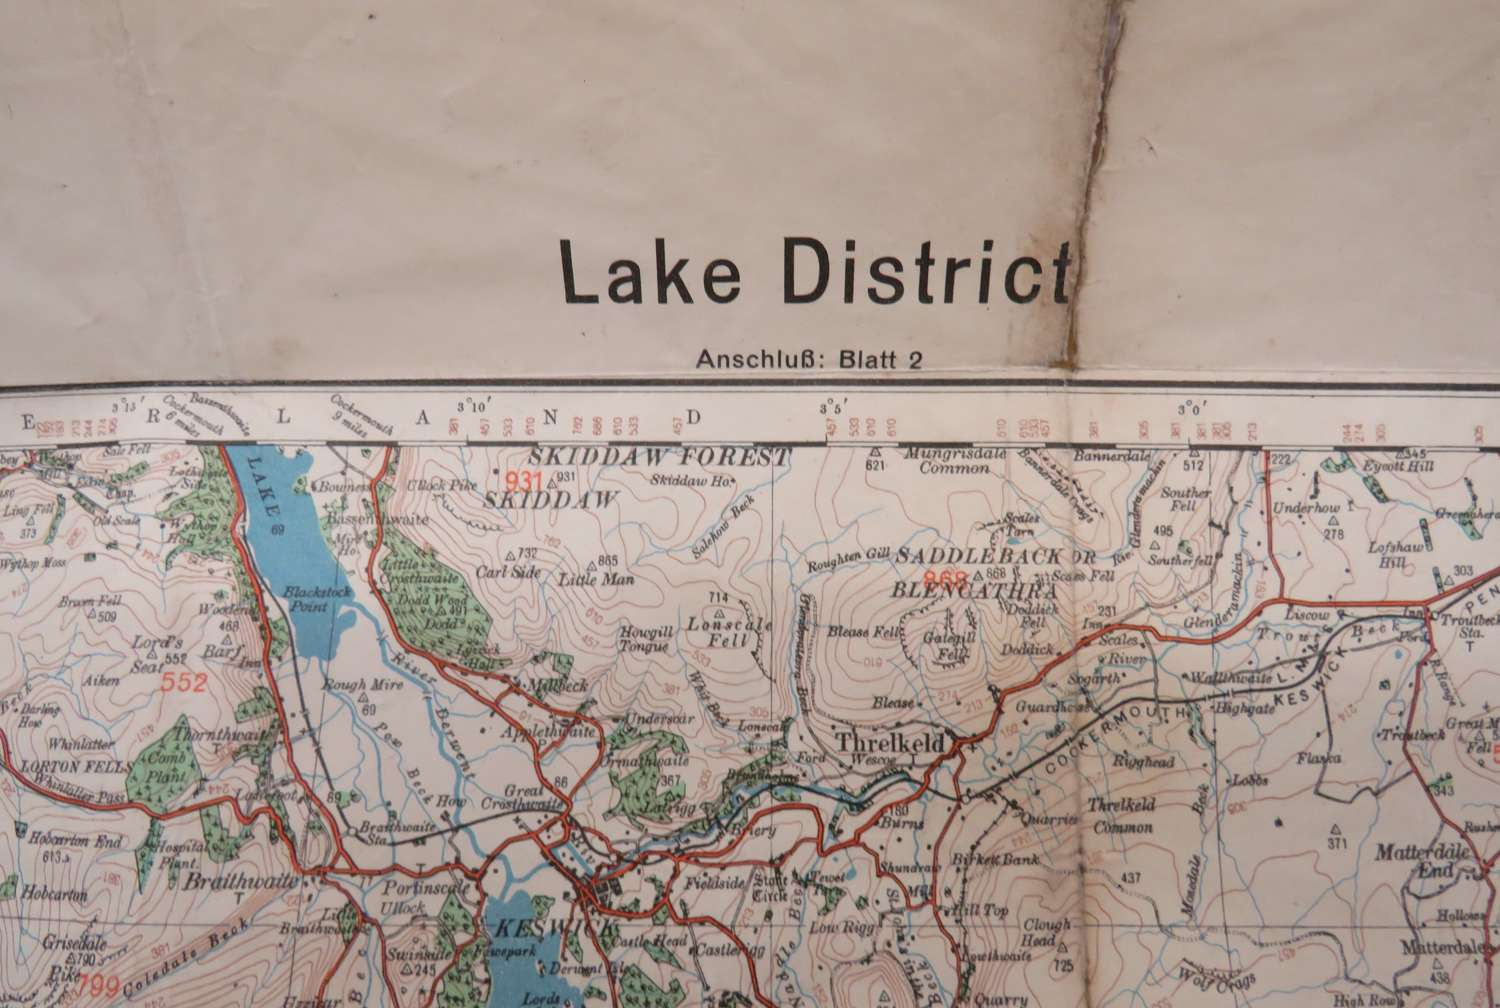 WW 2 German Invasion Map of the Lake District